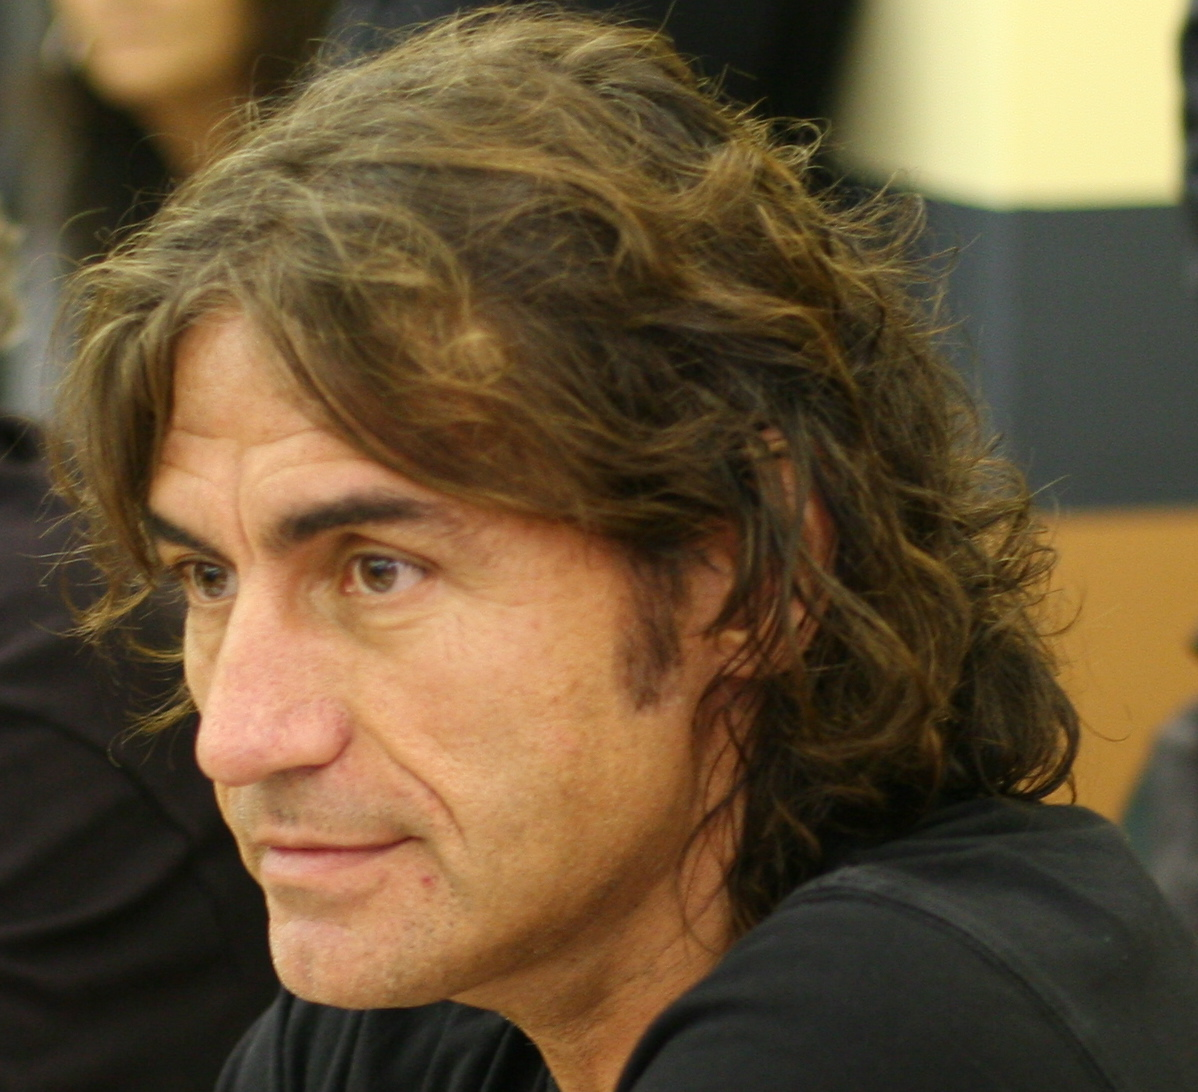 ligabue - photo #13